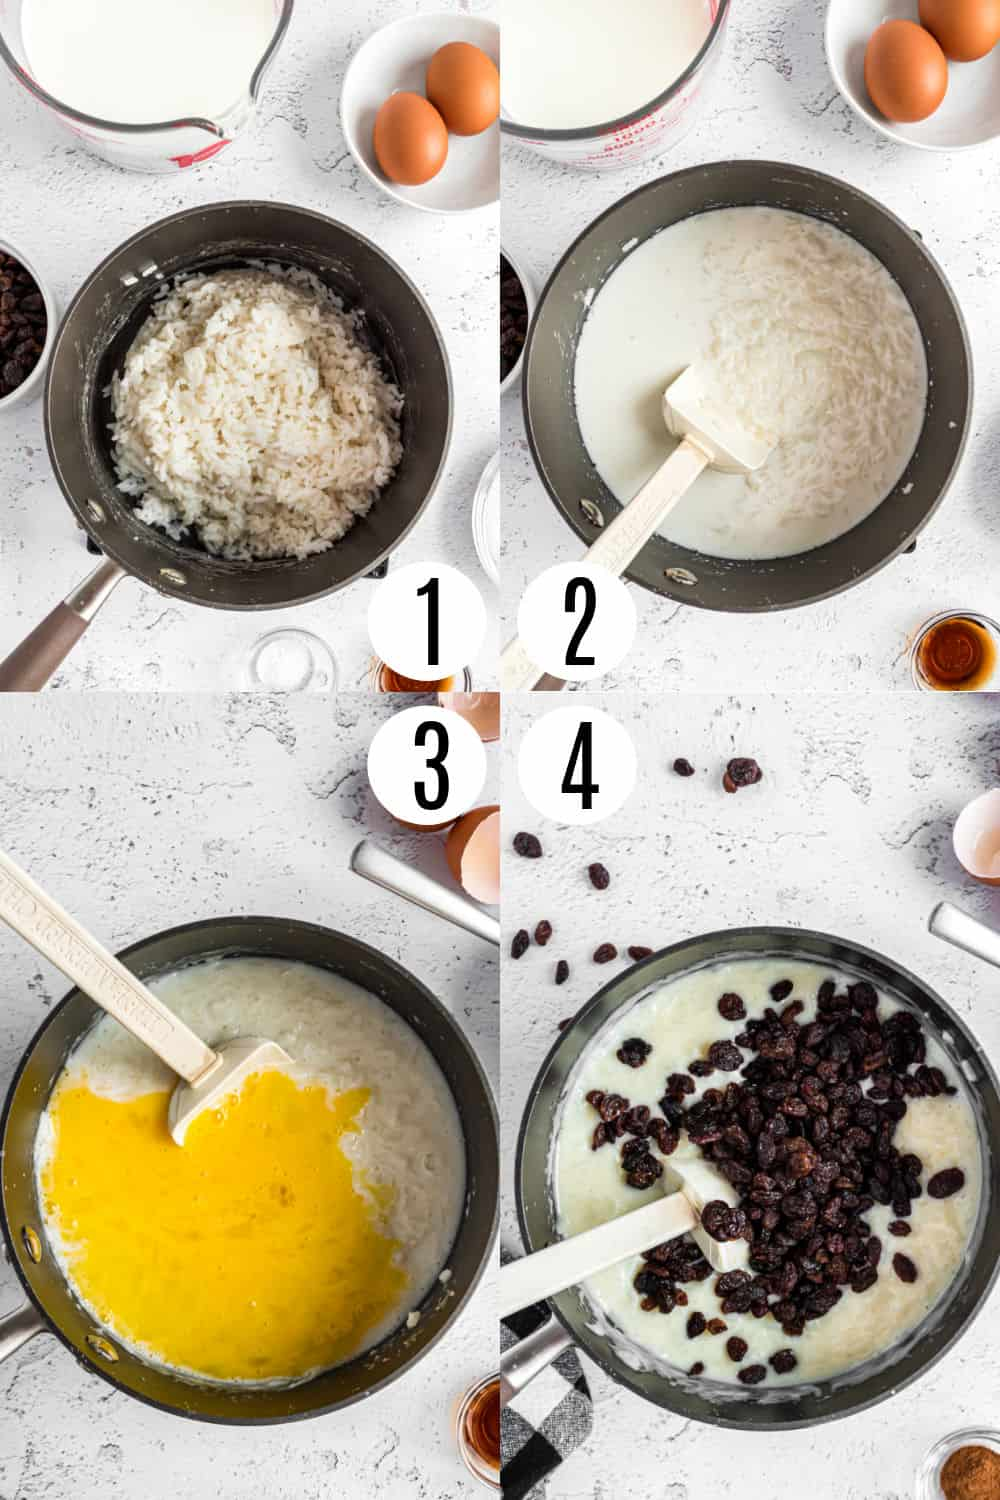 Step by step photos showing how to make rice pudding on the stove top.